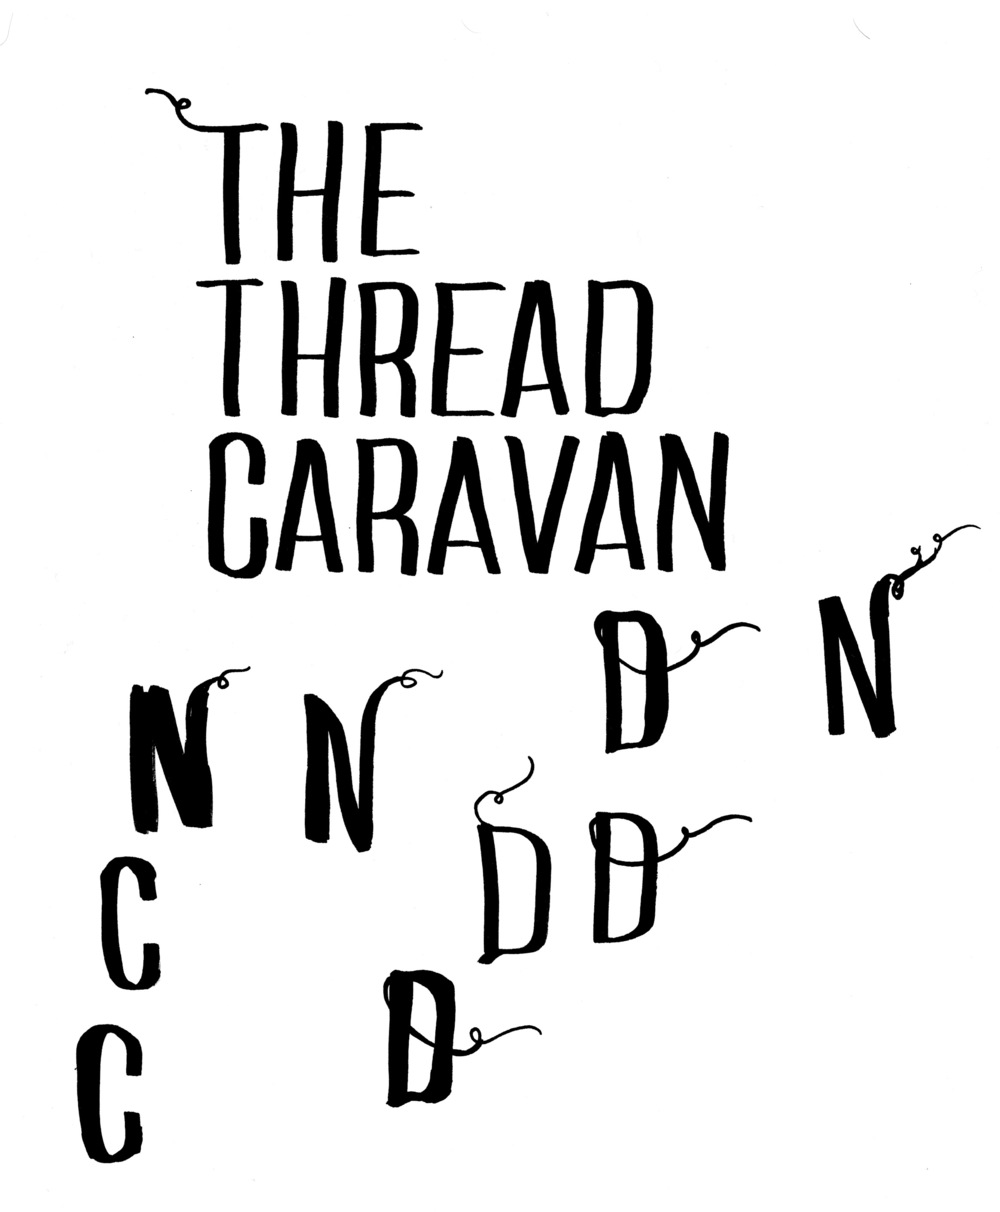 thread-caravan 1.jpeg